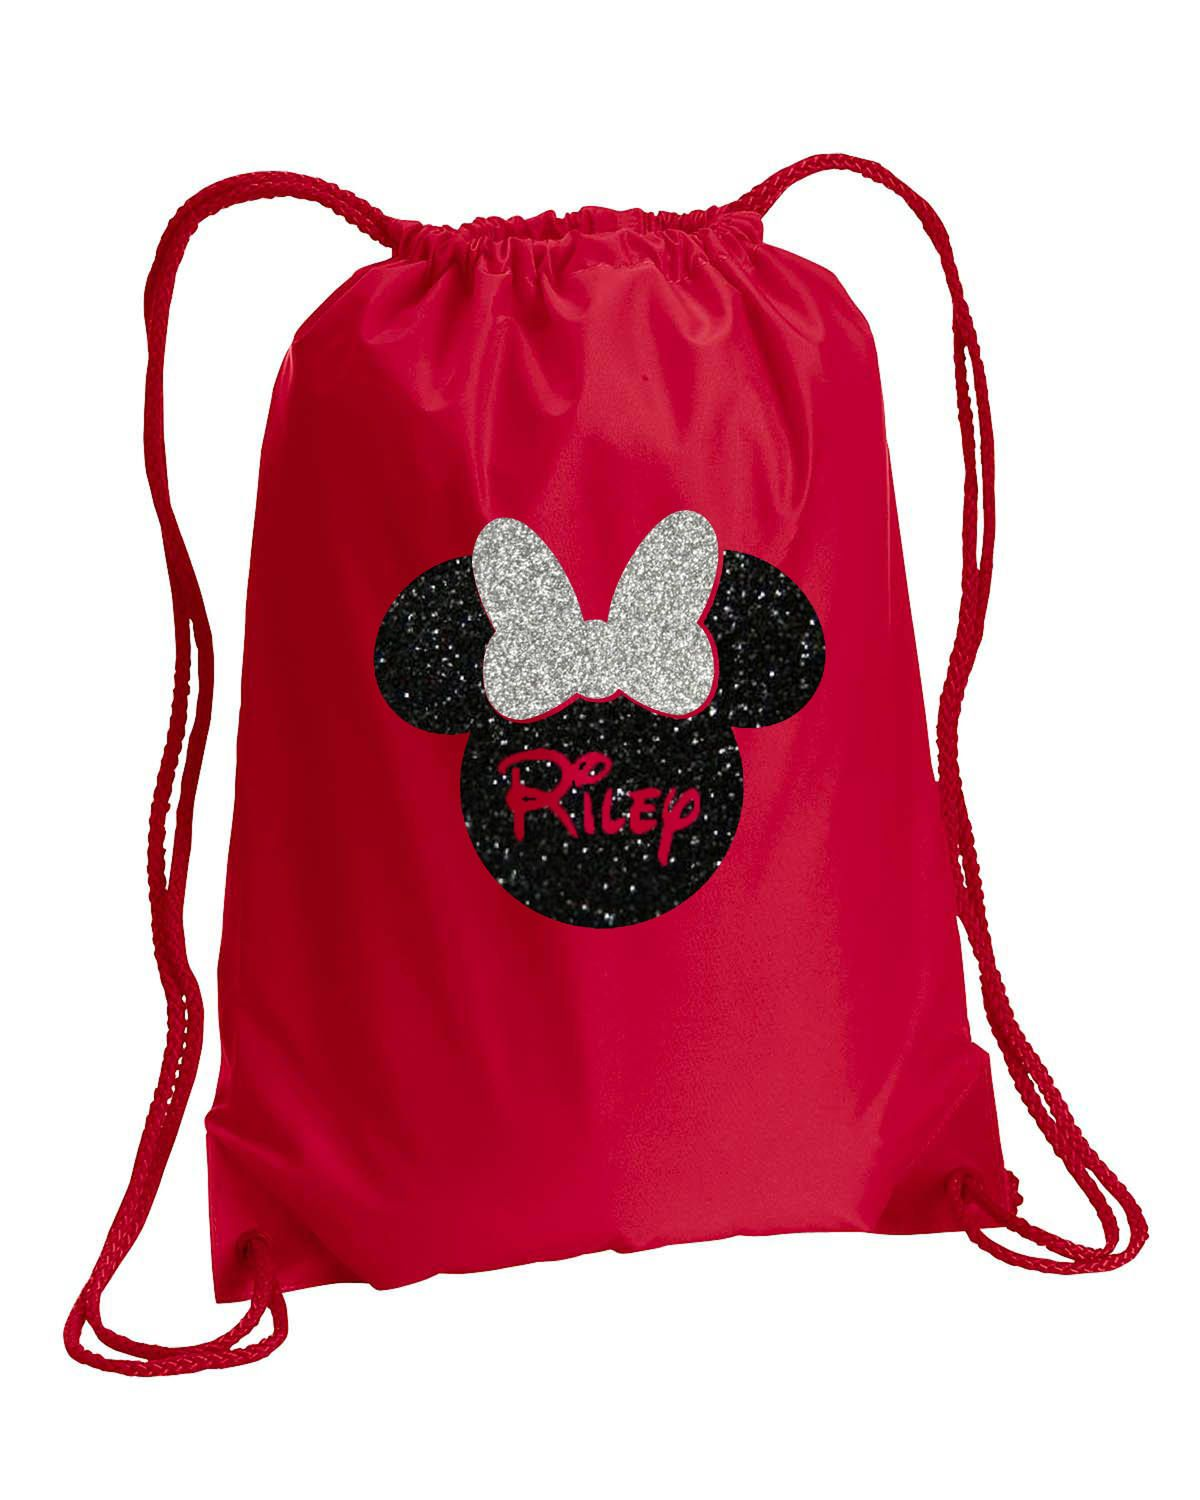 Minnie Mouse Bag Silver Glitter